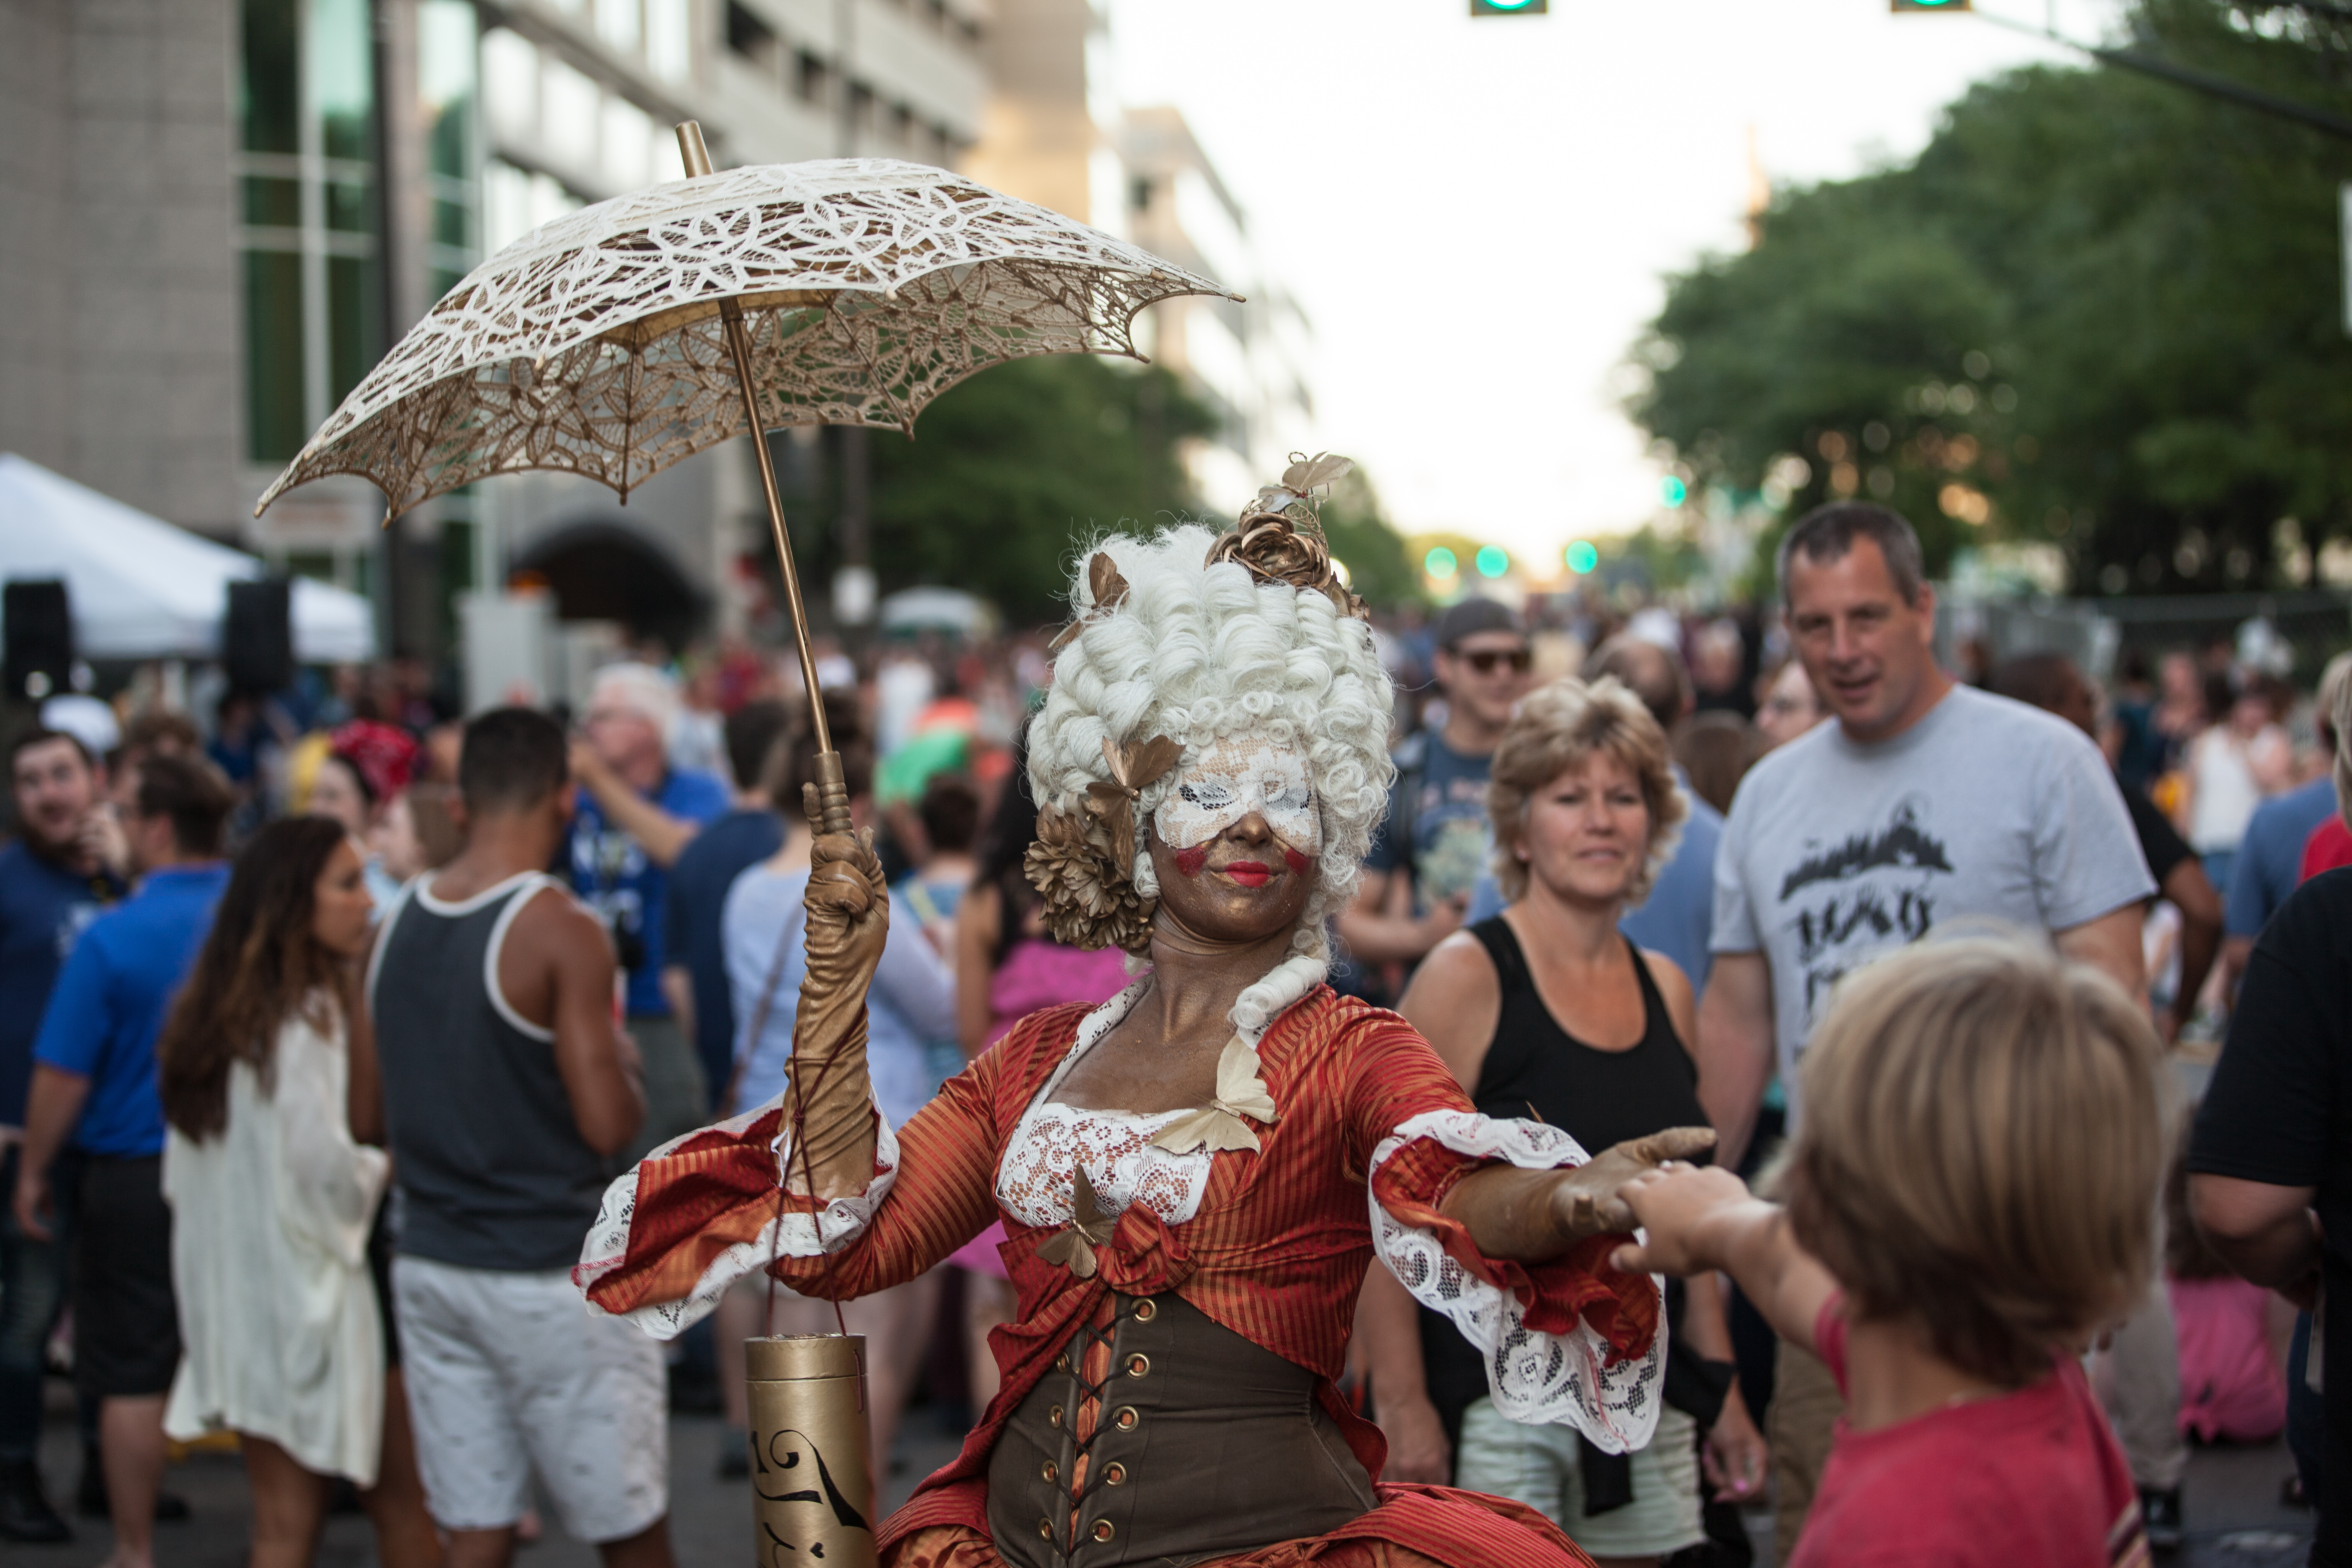 The Best Festivals And Events In Fort Wayne, Indiana With Regard To Fort Wayne Events Calendar 2021